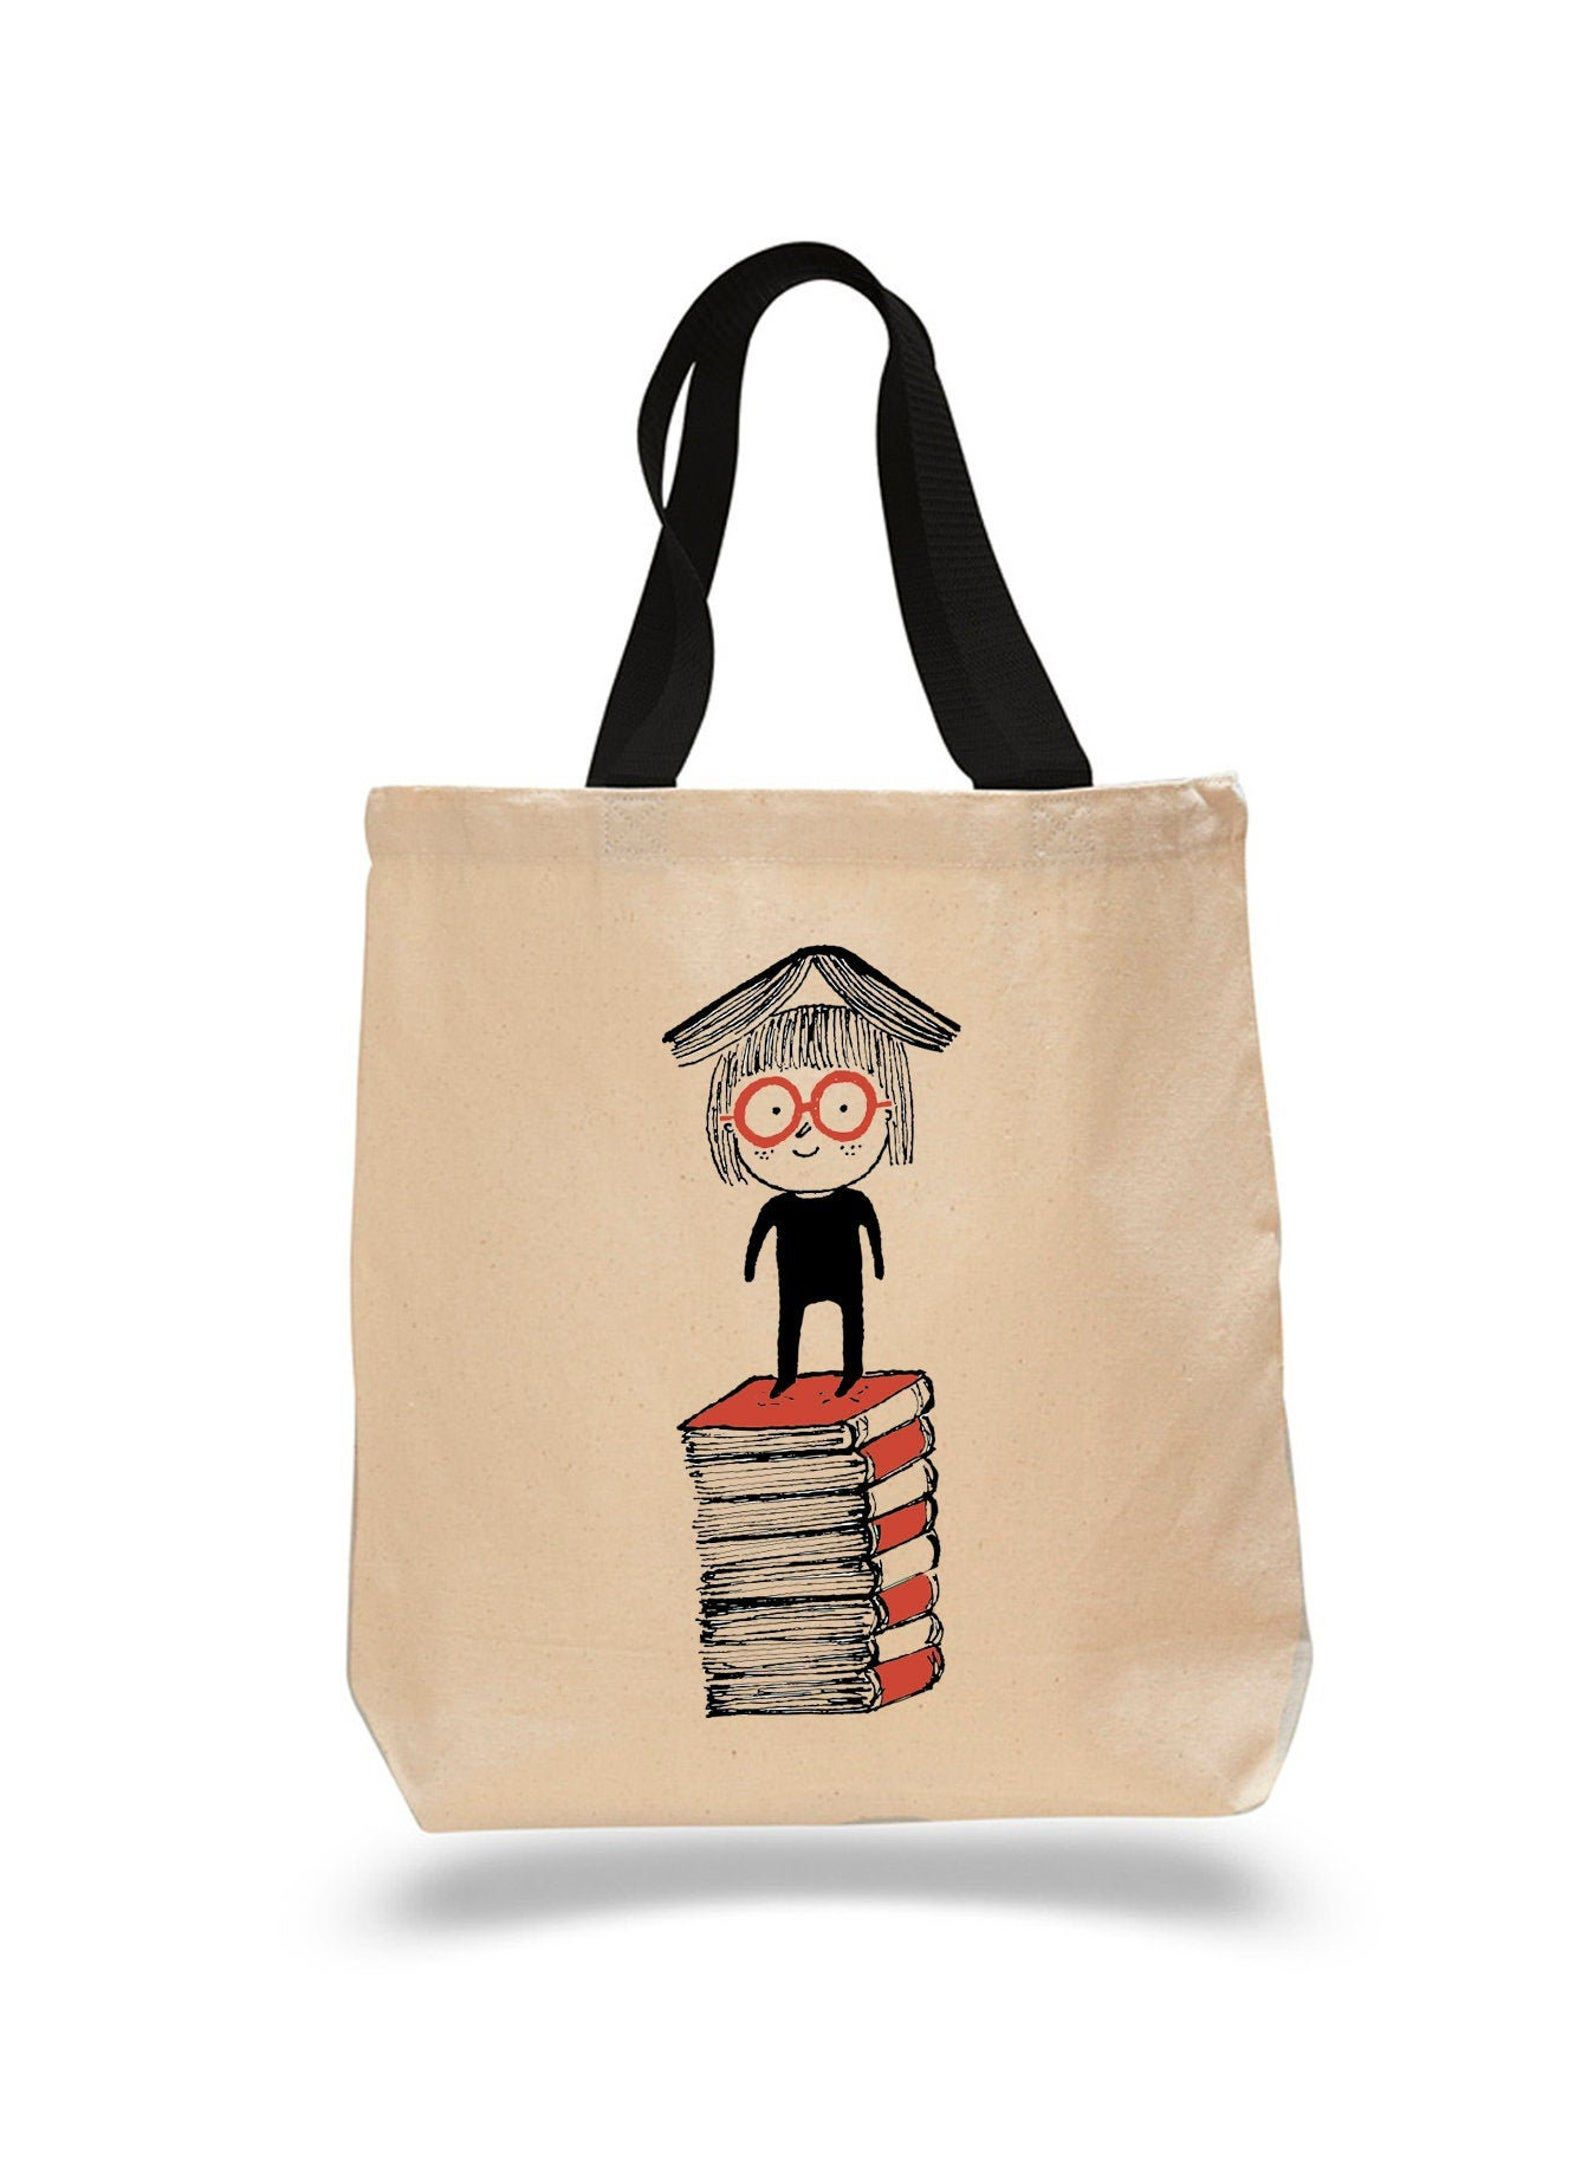 Tote bag with a cartoon character balancing a book on his head